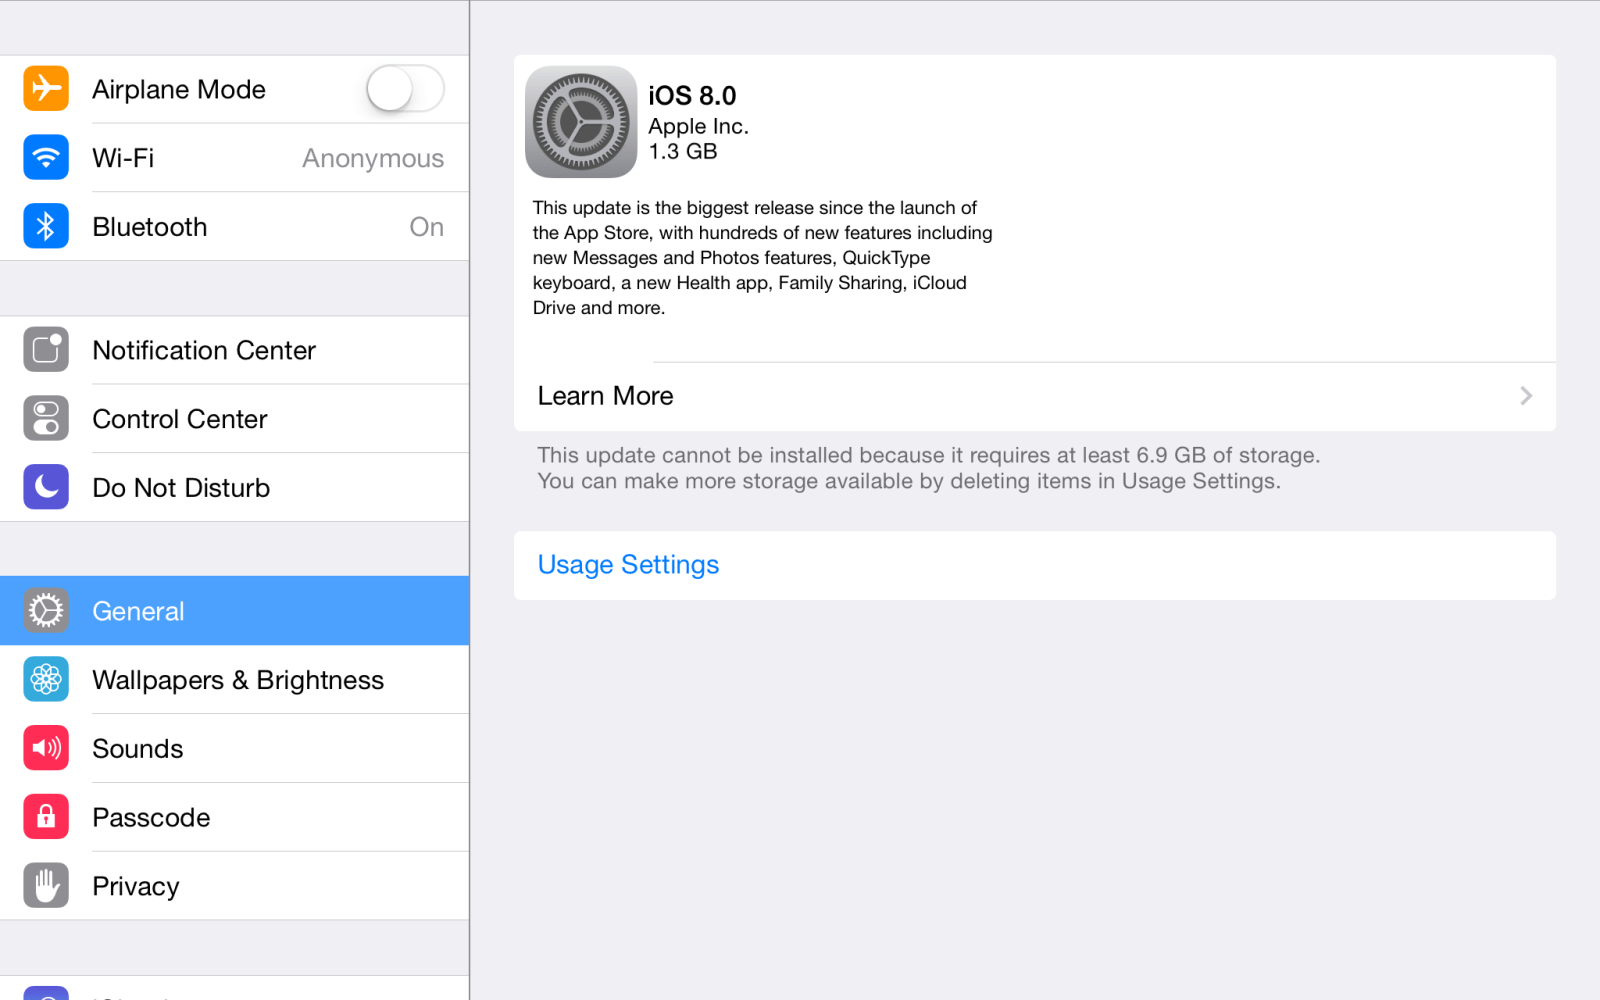 How-to: Shave some GBs off of your iOS device so you can update to iOS 8